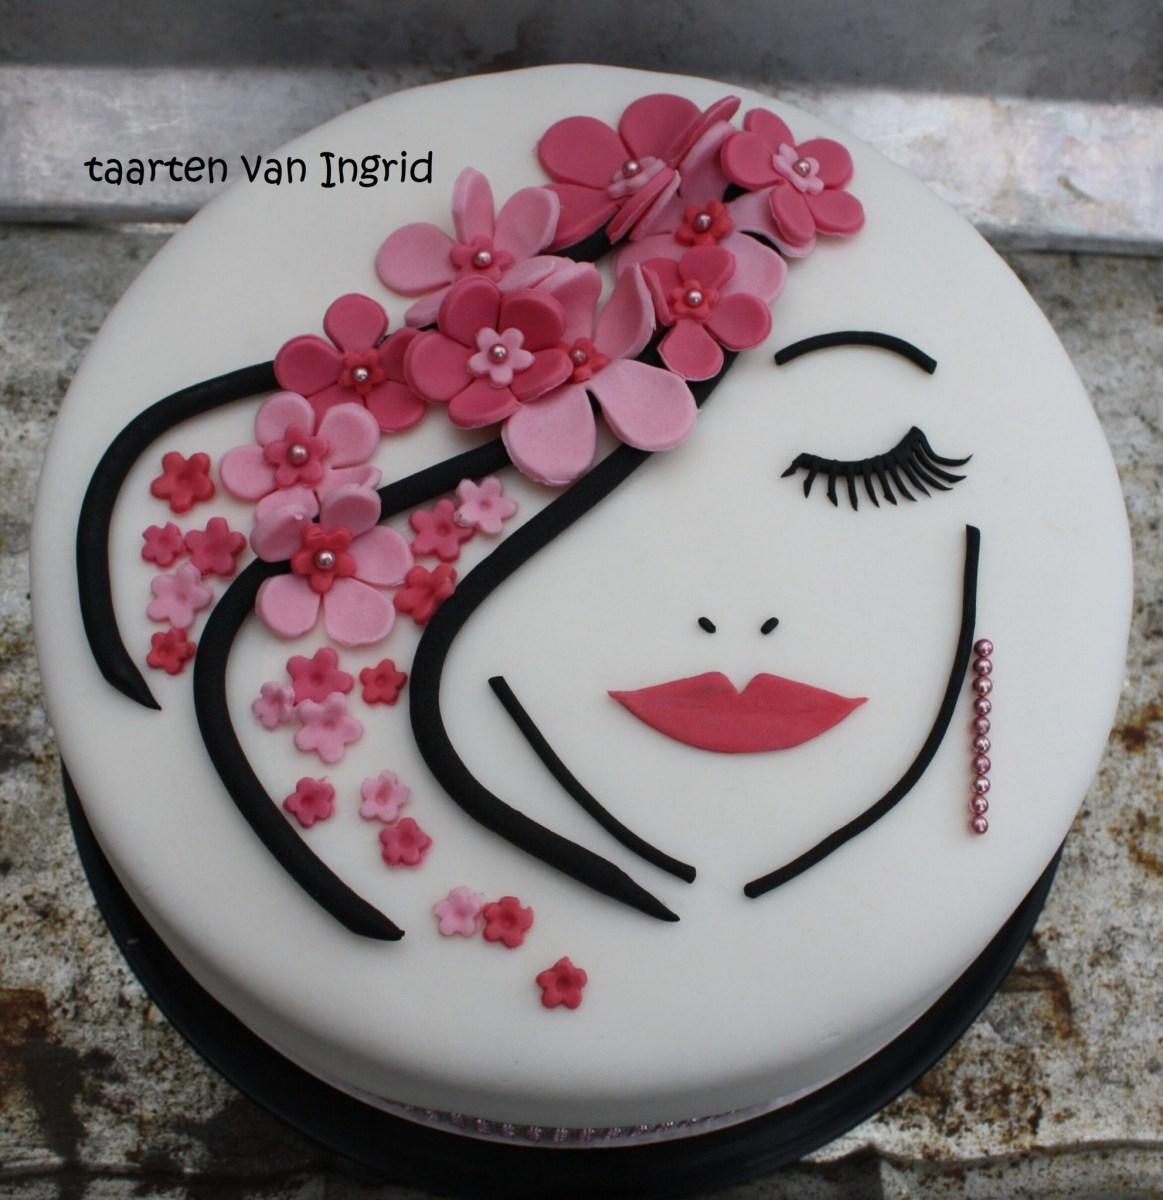 Wondrous Birthday Cakes For Ladies Lady Taart Cake Art Cakes Pinterest Cake Personalised Birthday Cards Rectzonderlifede